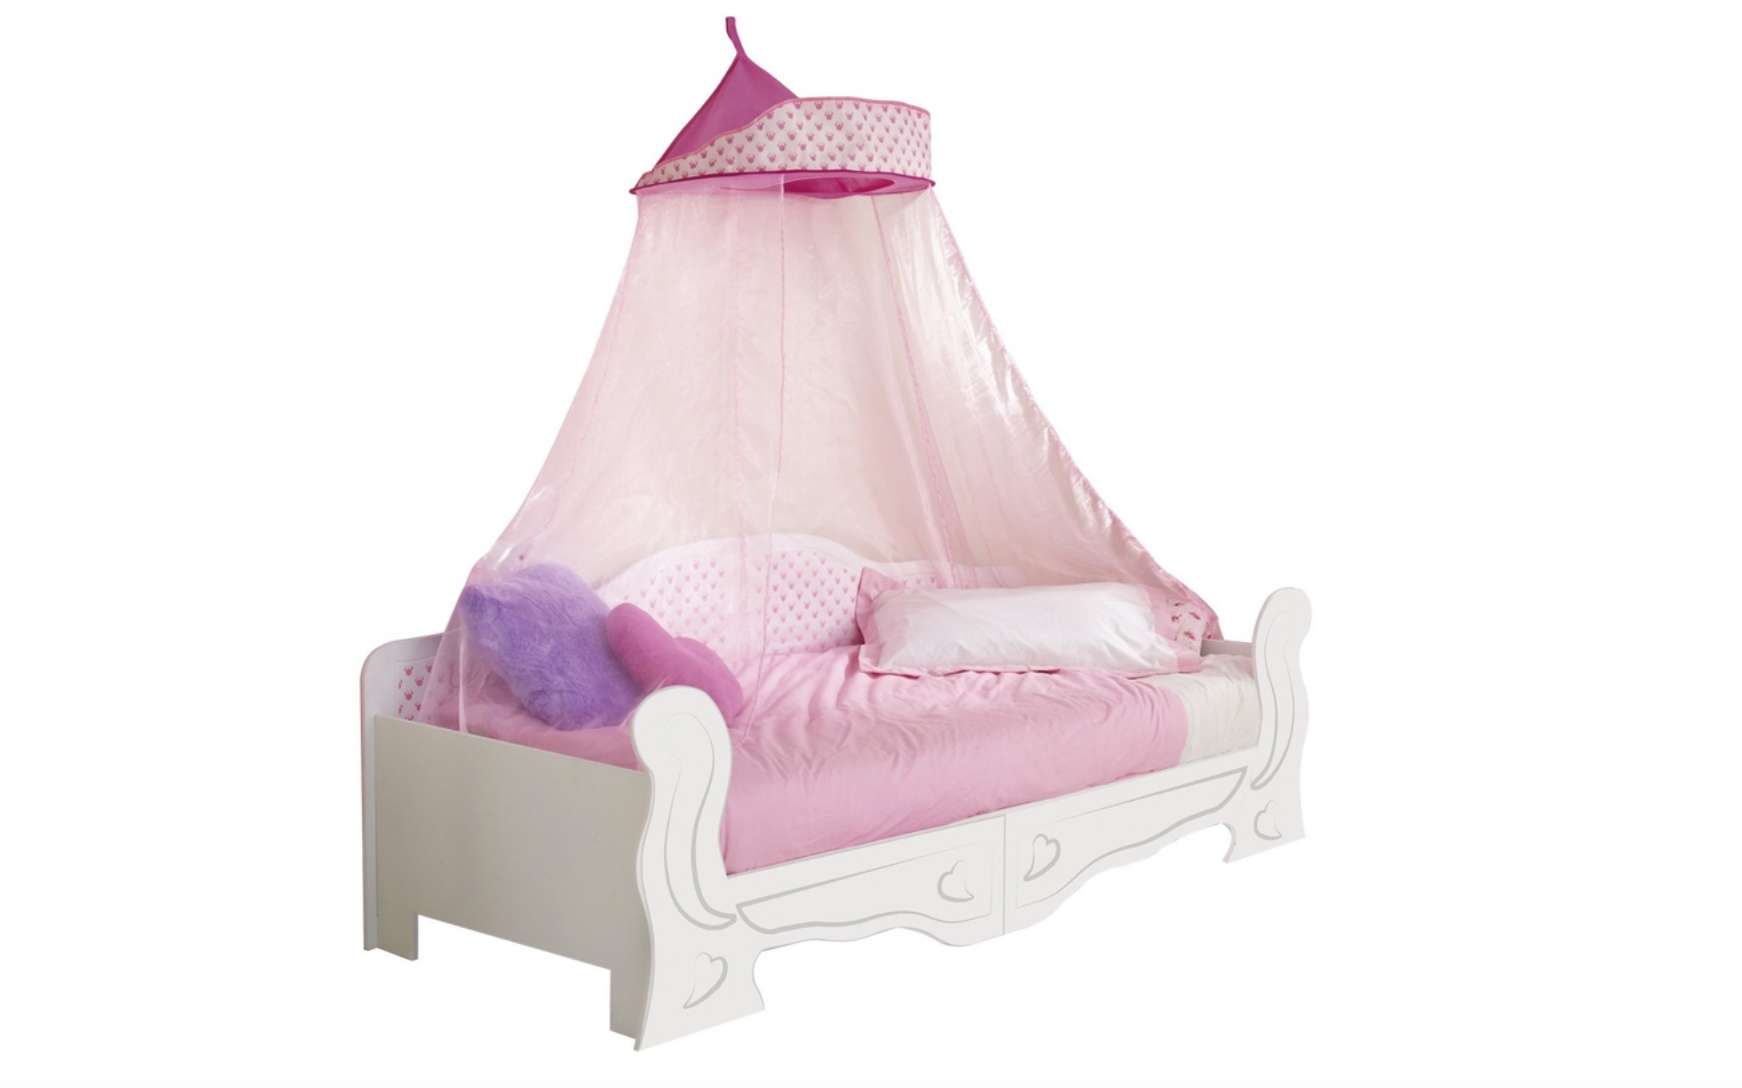 kinderbett bett himmelbett minnie maus rosa matratze. Black Bedroom Furniture Sets. Home Design Ideas